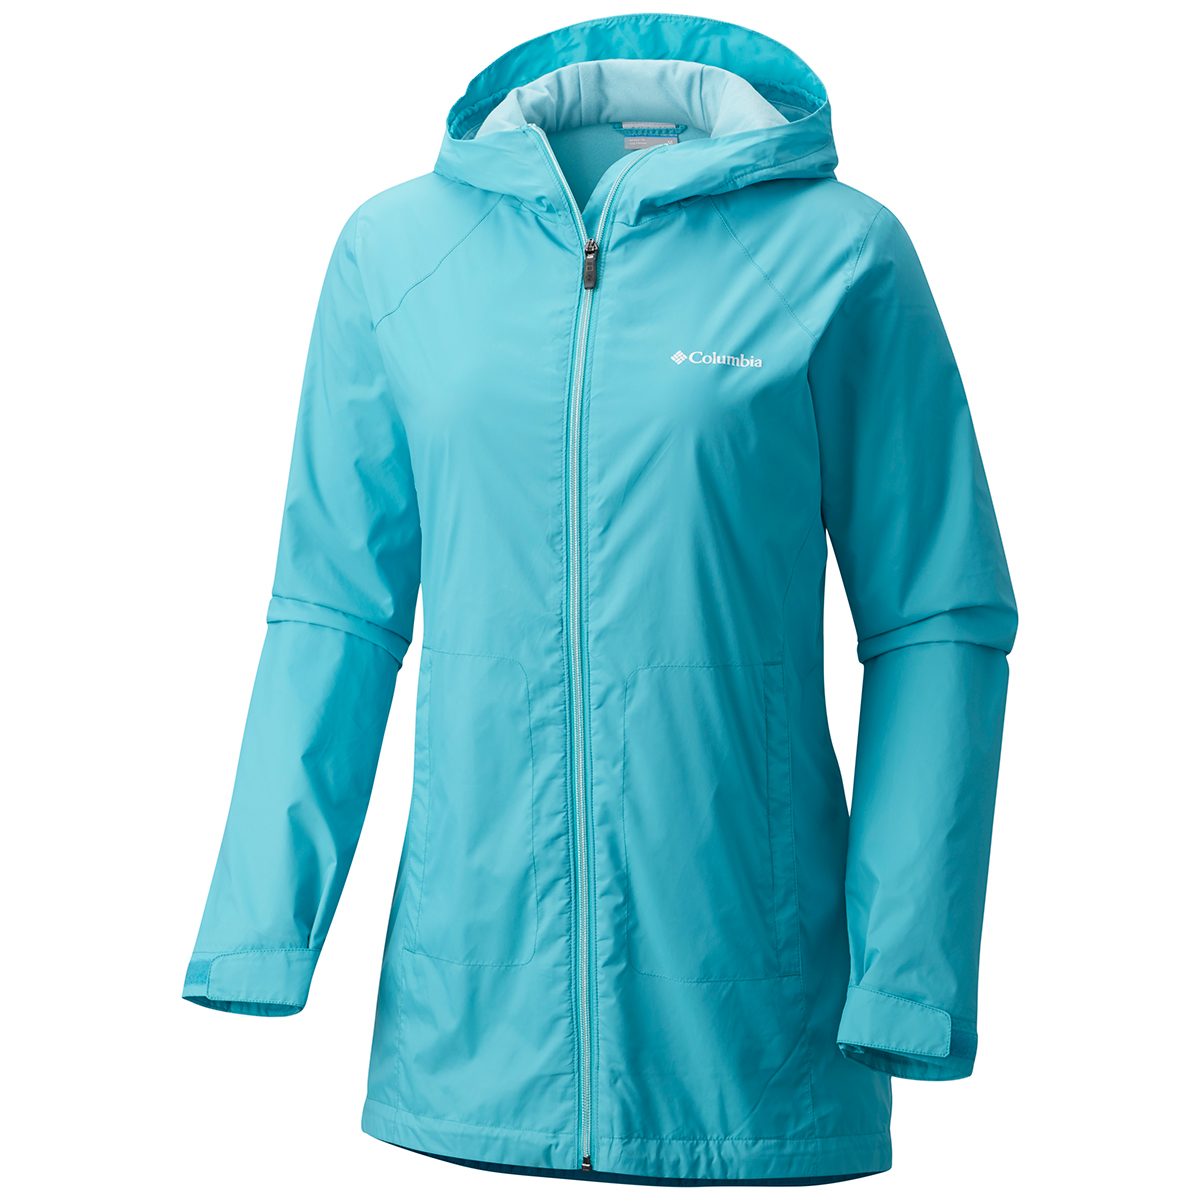 Columbia Women's Switchback Lined Long Jacket - Green, L